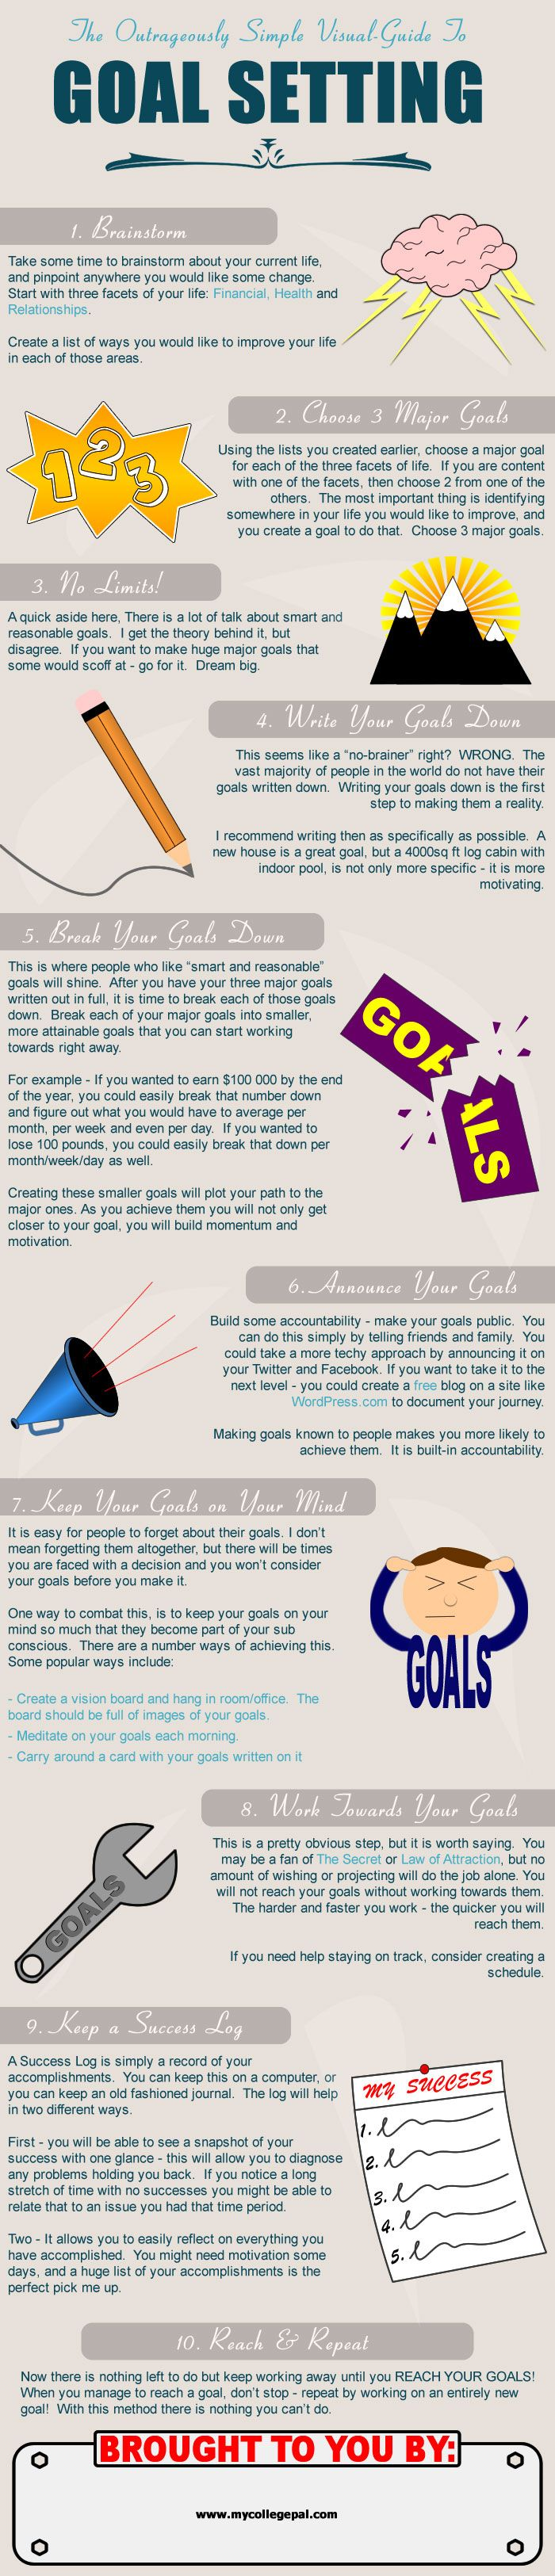 Coaching - Goal Setting Infographic. We have a passion for hitting goals and share the same passion for our services in training and consultancy Goal Setting ,KPI Management http://www.jamsovaluesmarter.com